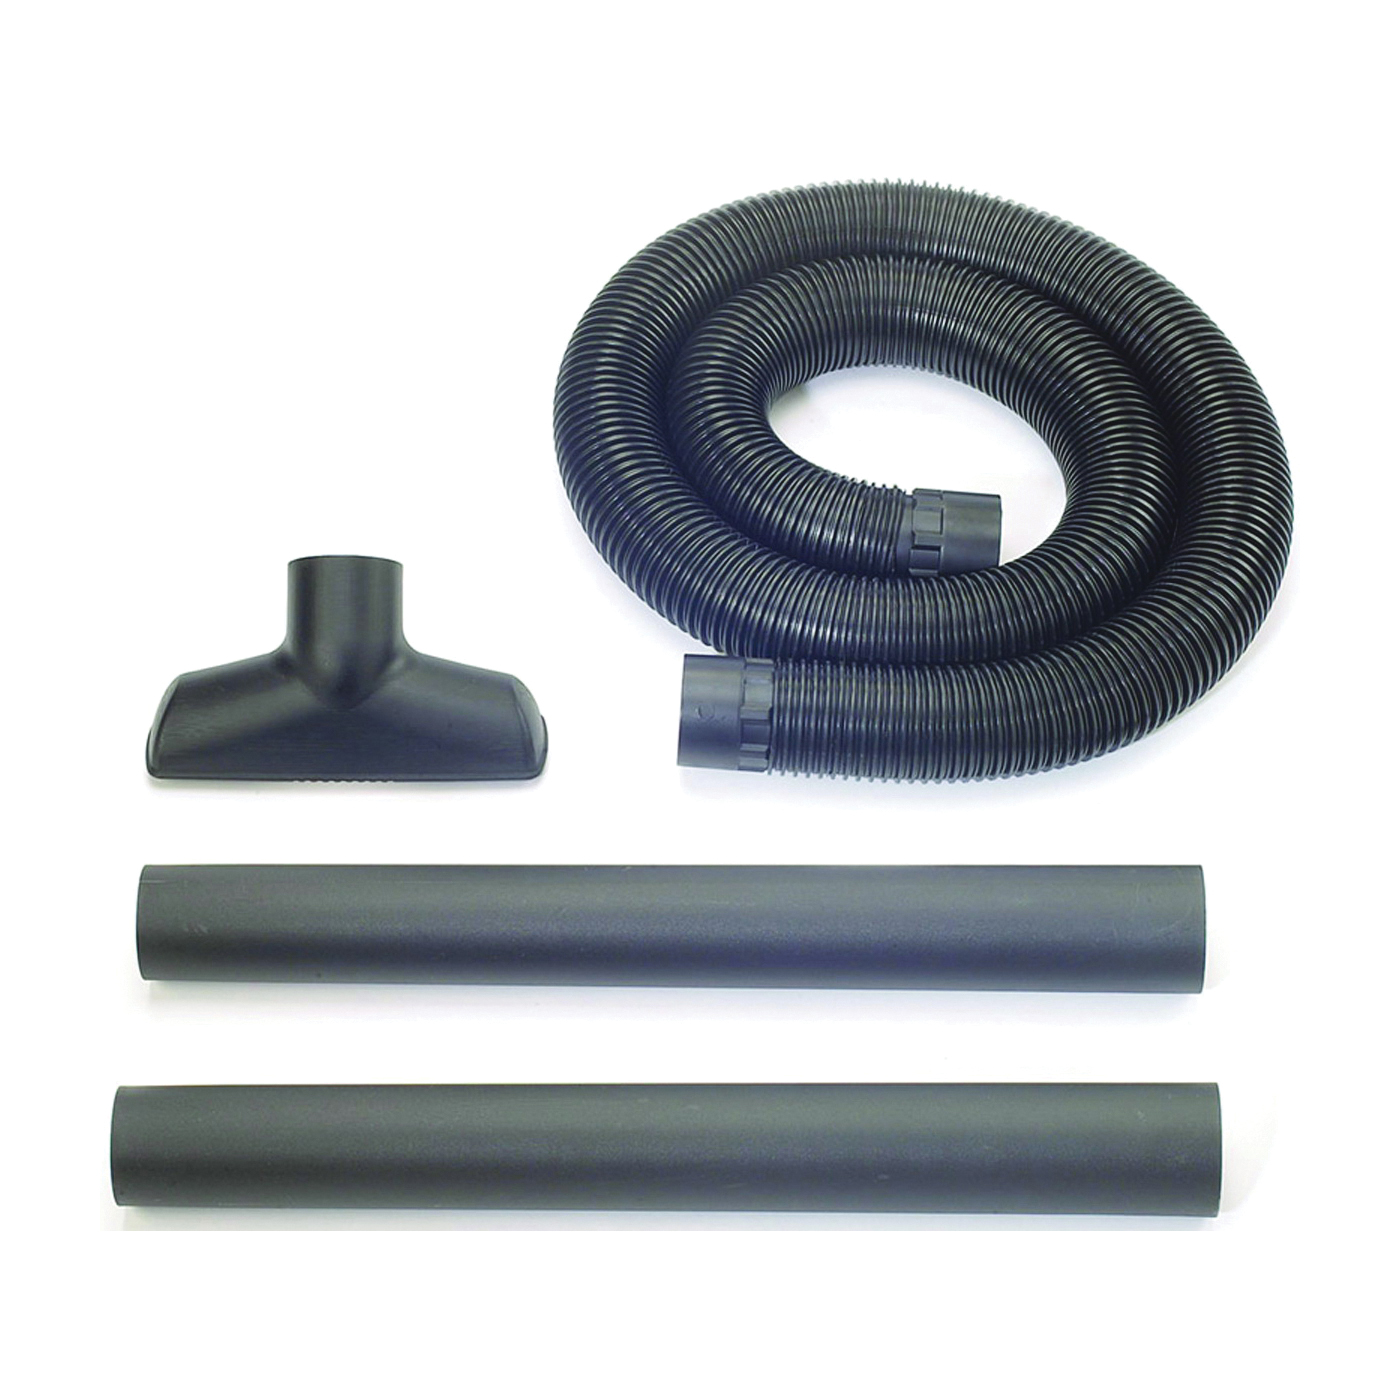 Picture of Shop-Vac 8017800 Bulk Dry Pickup Kit, For: Shop-Vac Wet/Dry Vacuums with A 2-1/2 in Dia Inlet